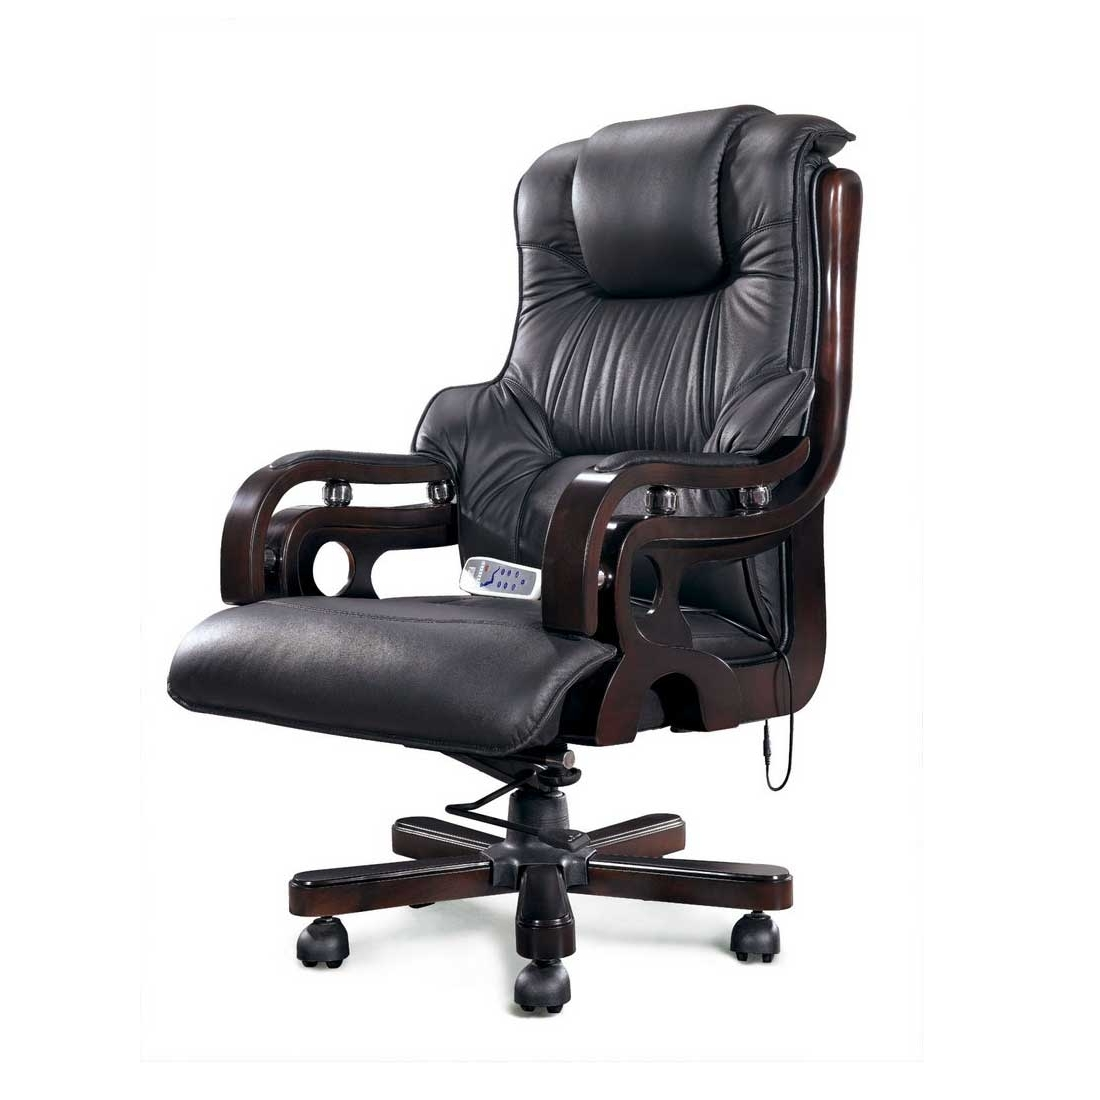 Best And Newest Elegant Unique Office Chair In Styles Of Chairs With Additional 32 Intended For Quality Executive Office Chairs (View 5 of 20)